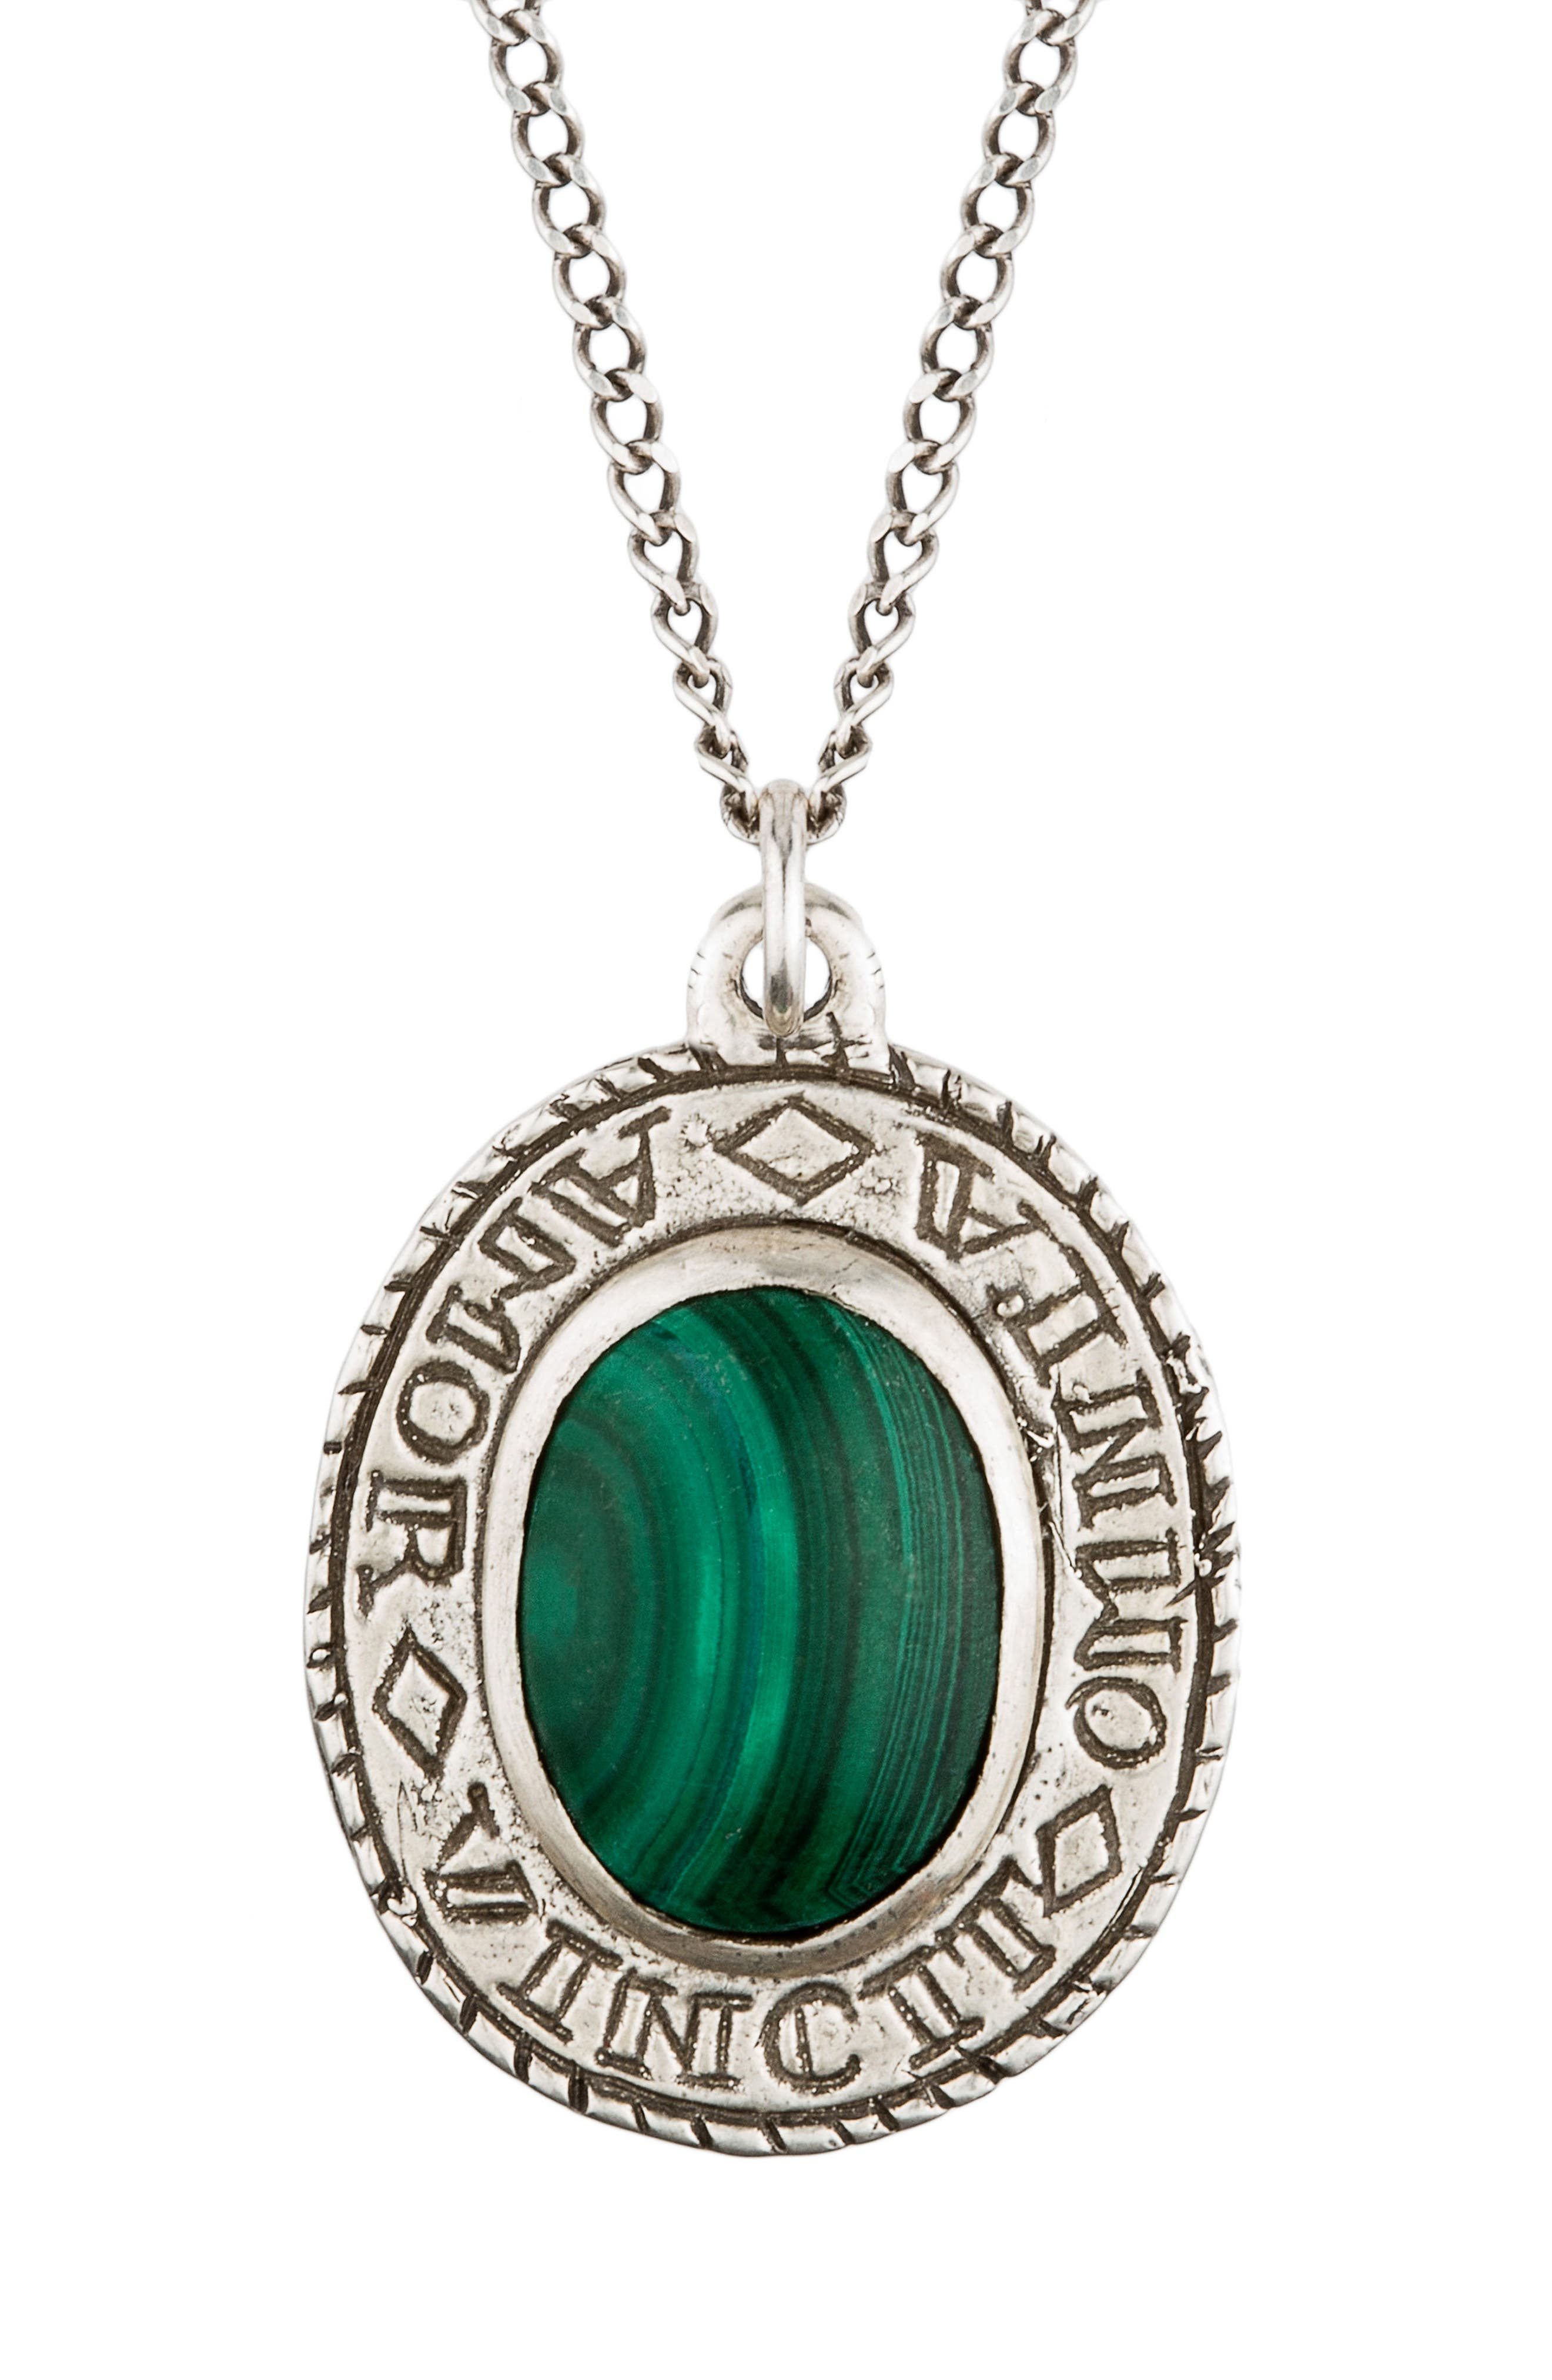 Amor Sterling Silver Pendant Necklace,                         Main,                         color, Green